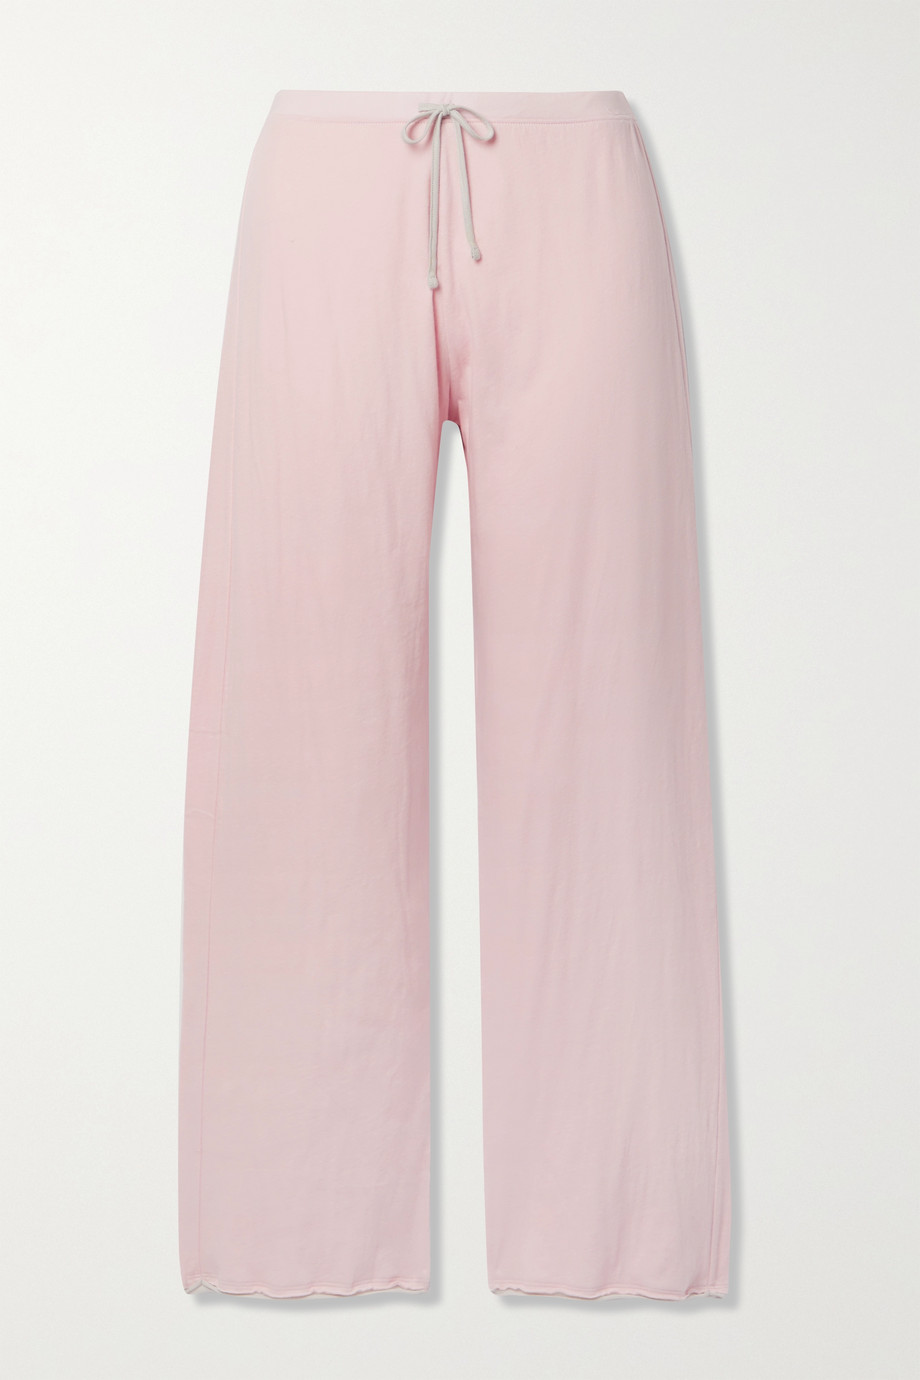 SKIN + NET SUSTAIN Guinevere organic Pima cotton-jersey track pants